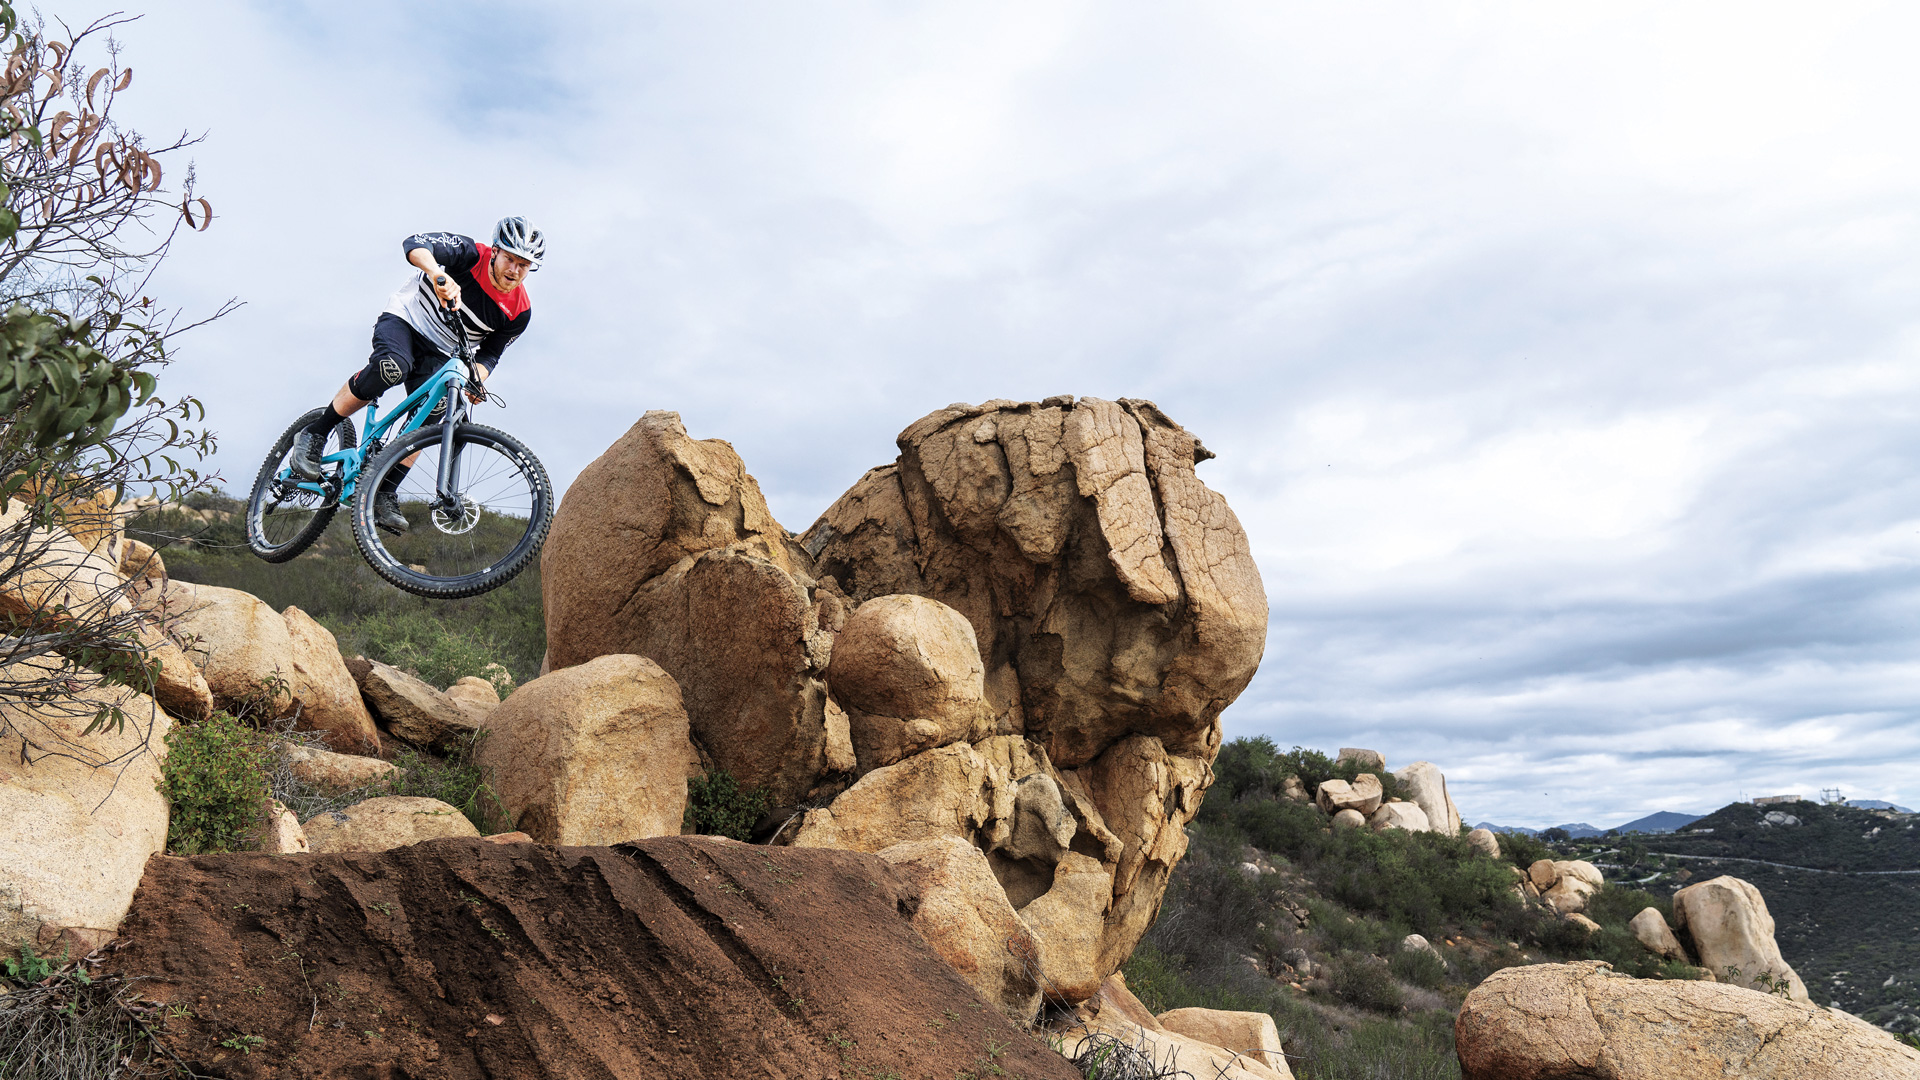 The Best New Mountain Bikes of 2019 Are Killer Climbers